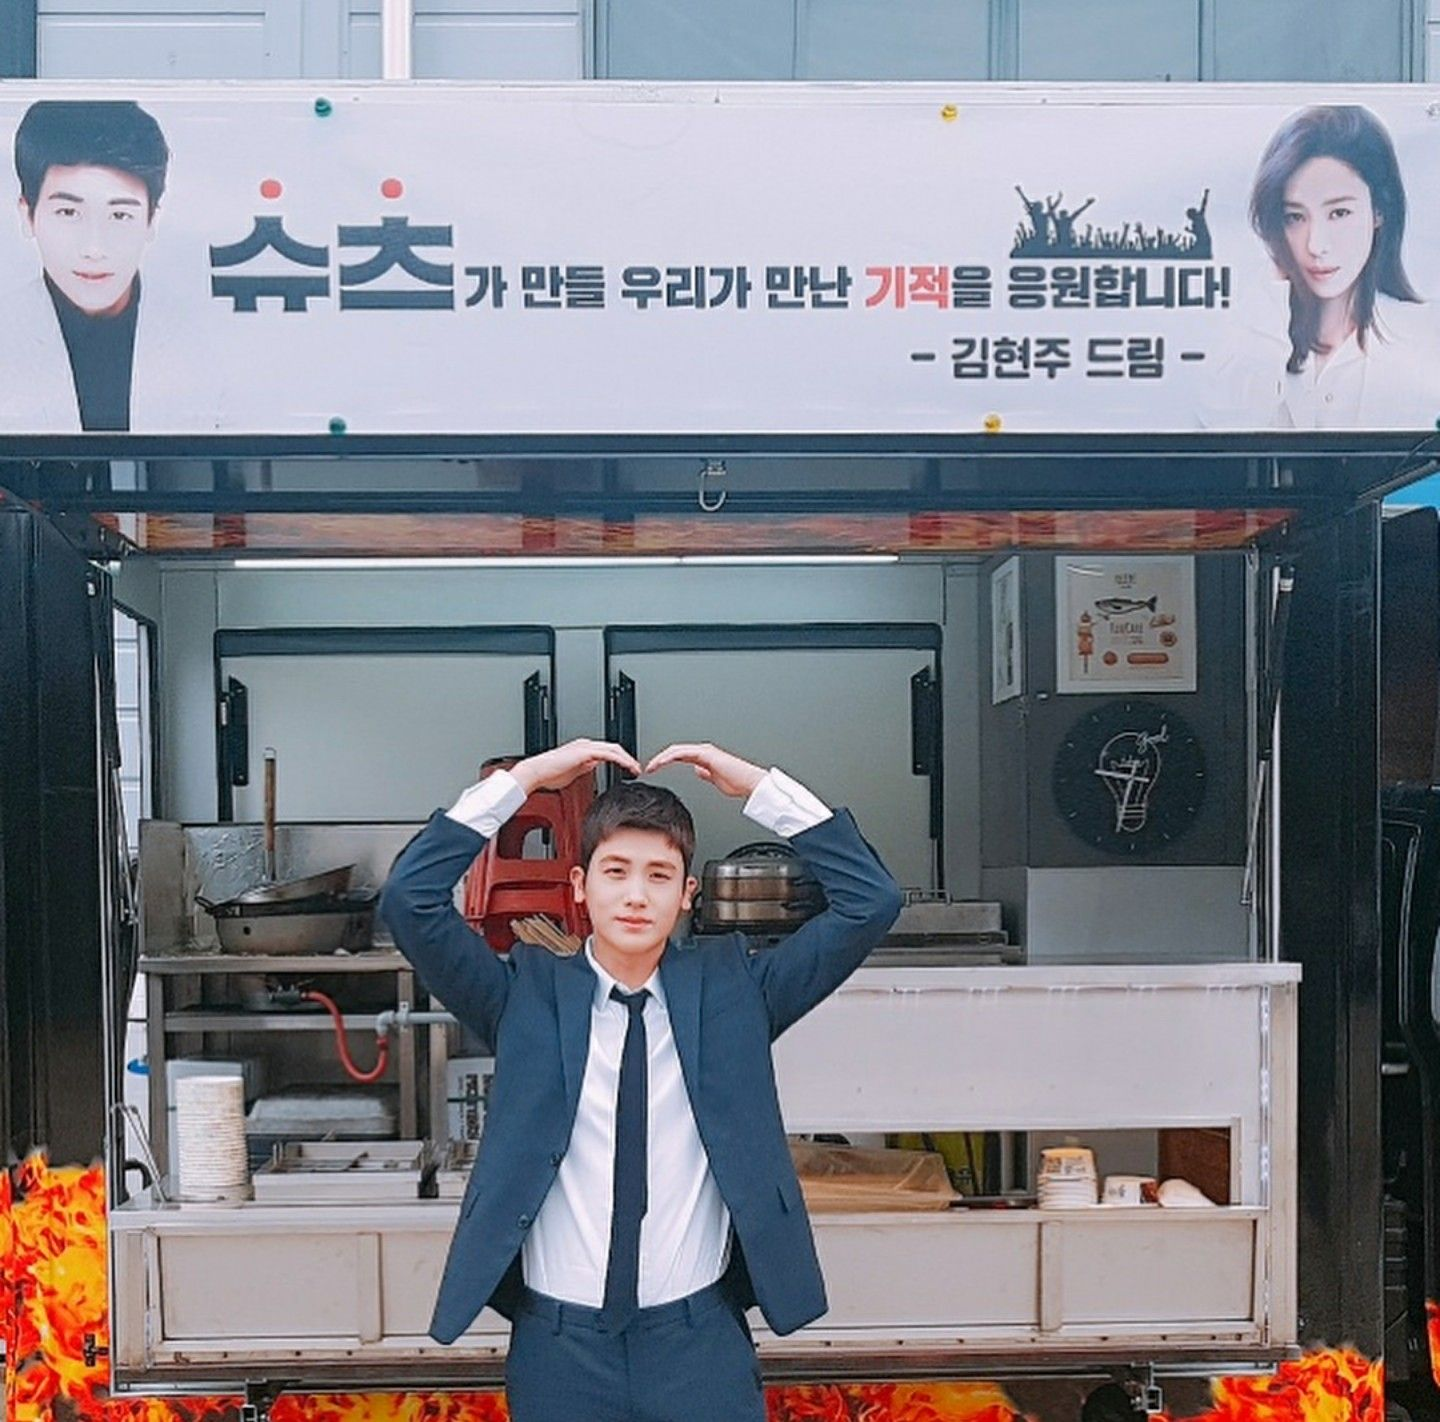 Park Hyung Sik Loves The Snacks From The Food Truck Sent By Hyun Jo S Sister Sik Park Hyung Sik Park Hyung Shik